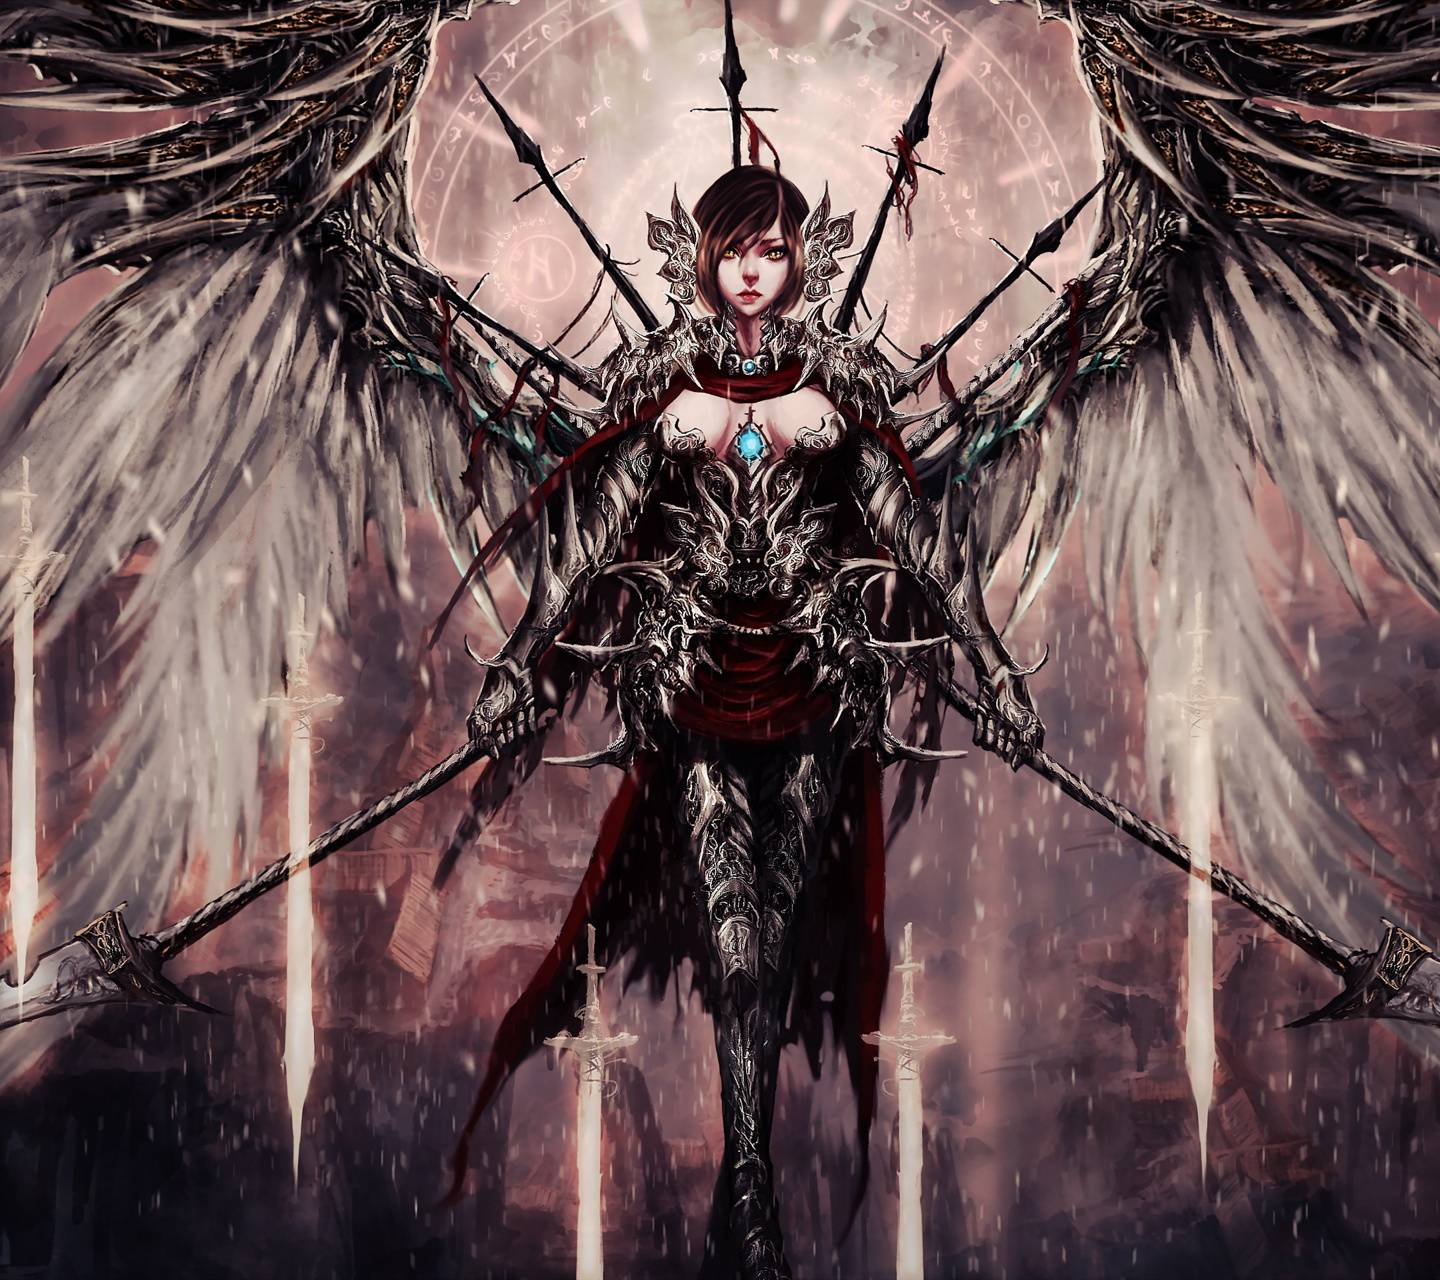 Angel with Spears